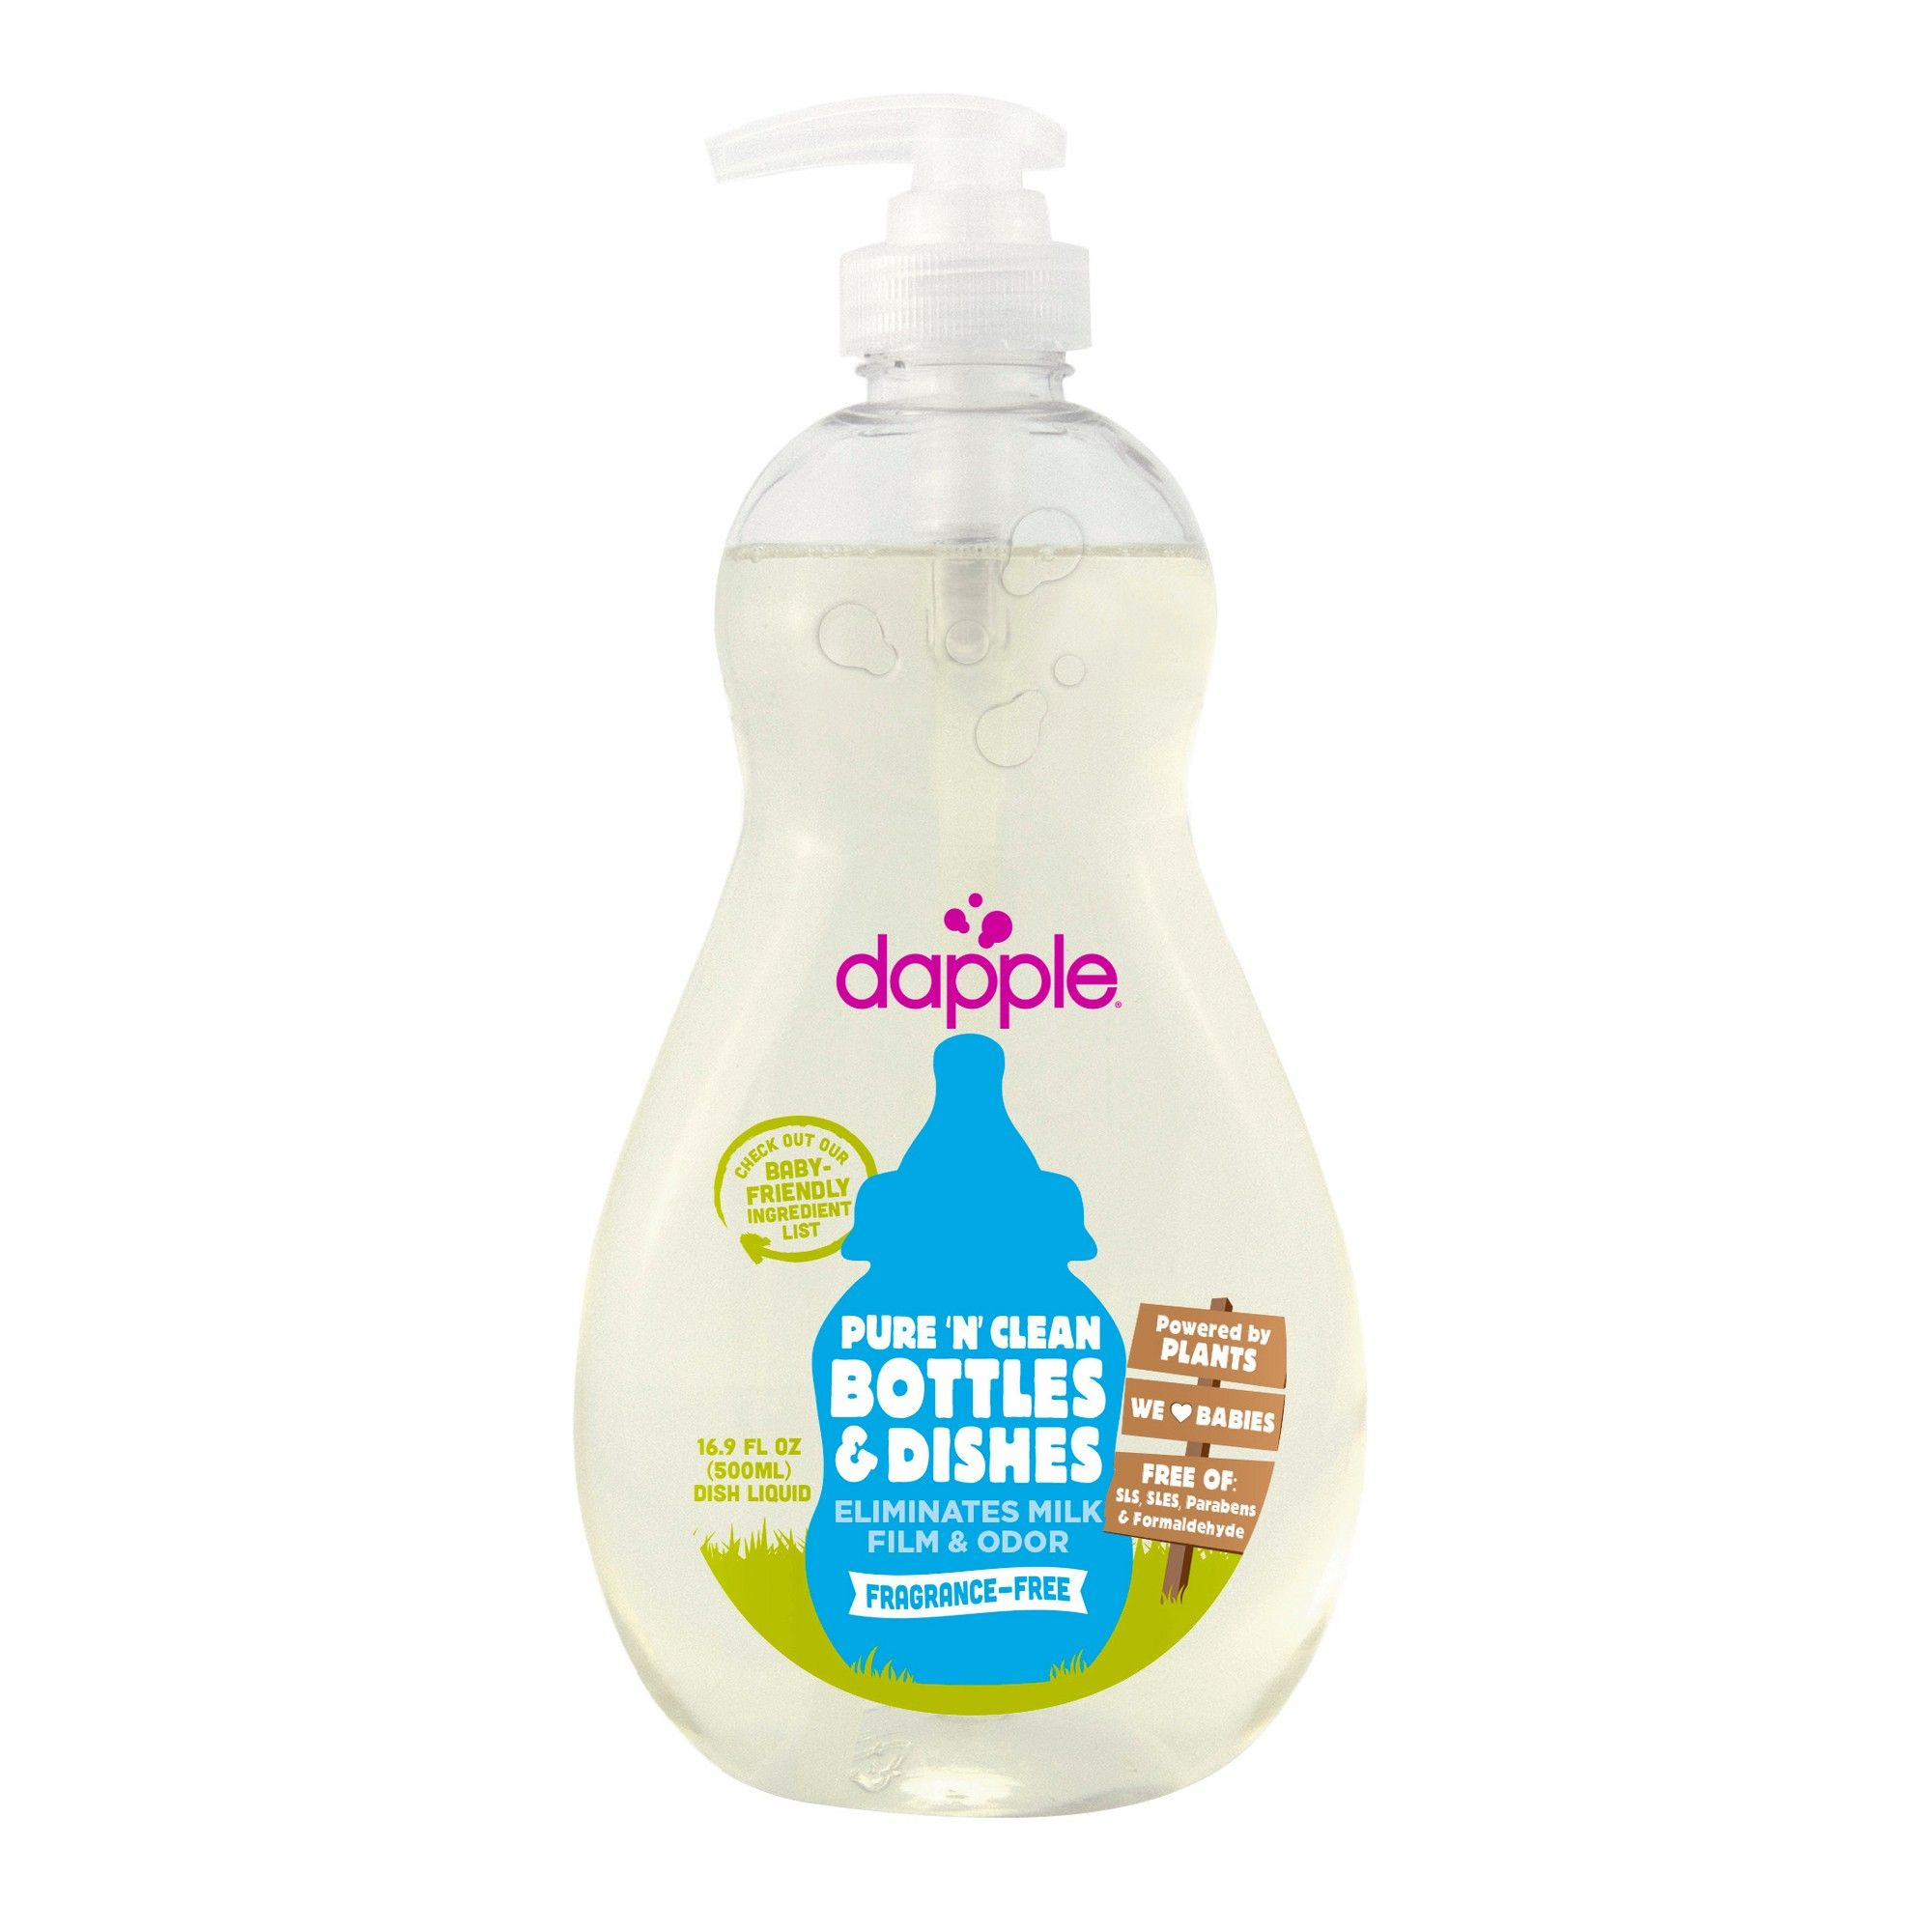 Dapple Bottle Dish Soap Fragrance Free 16 9 Fl Oz